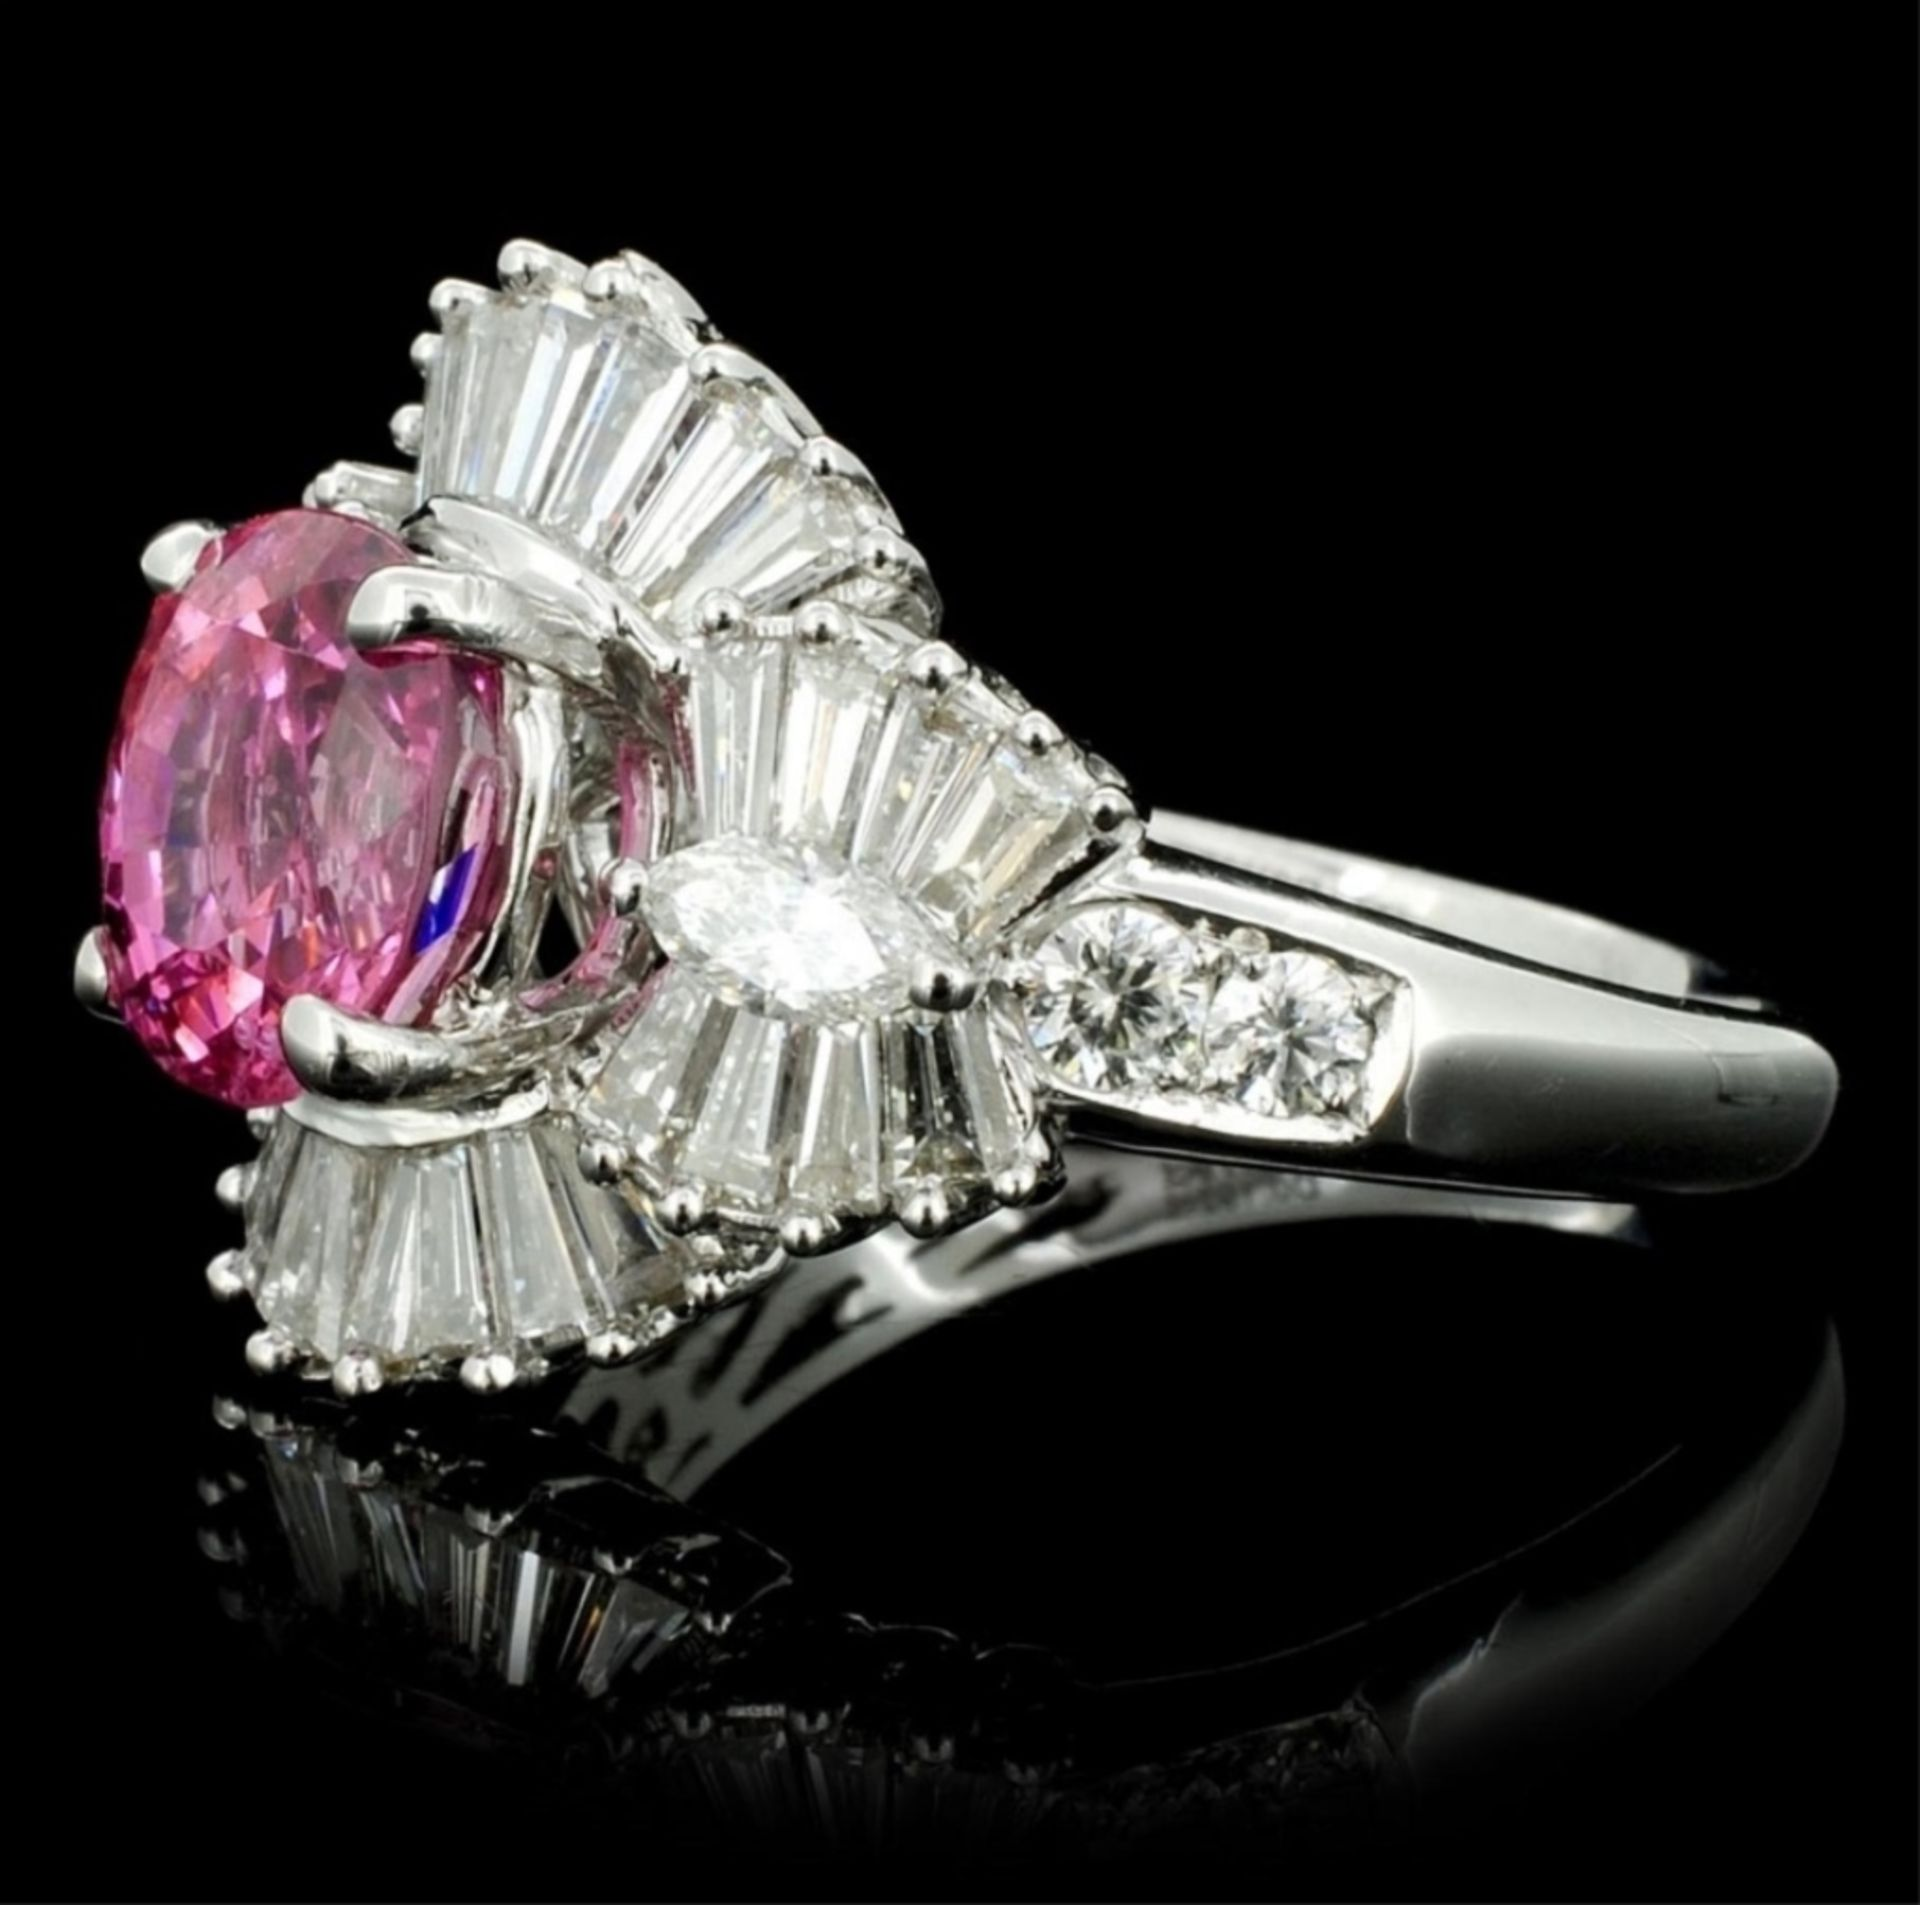 18K White Gold 2.26ct Spinel & 1.51ct Diamond Ring - Image 3 of 4